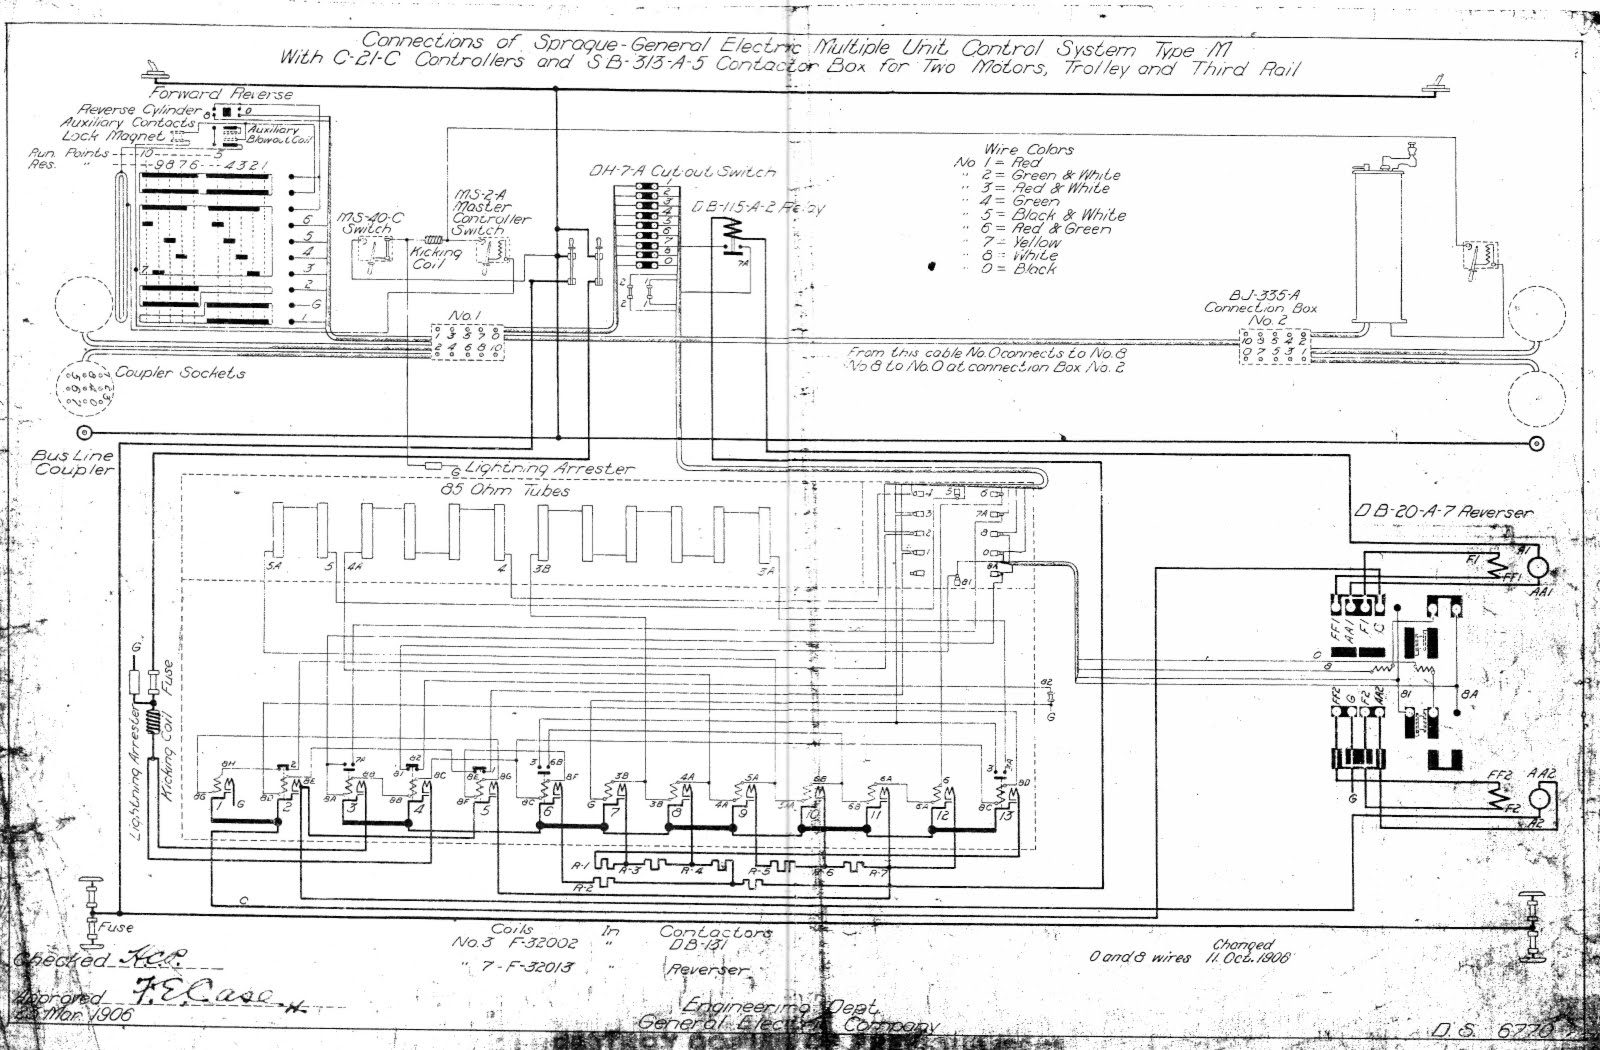 1995 honda civic ac wiring diagram 4 bit binary adder circuit 1992 radio imageresizertool com